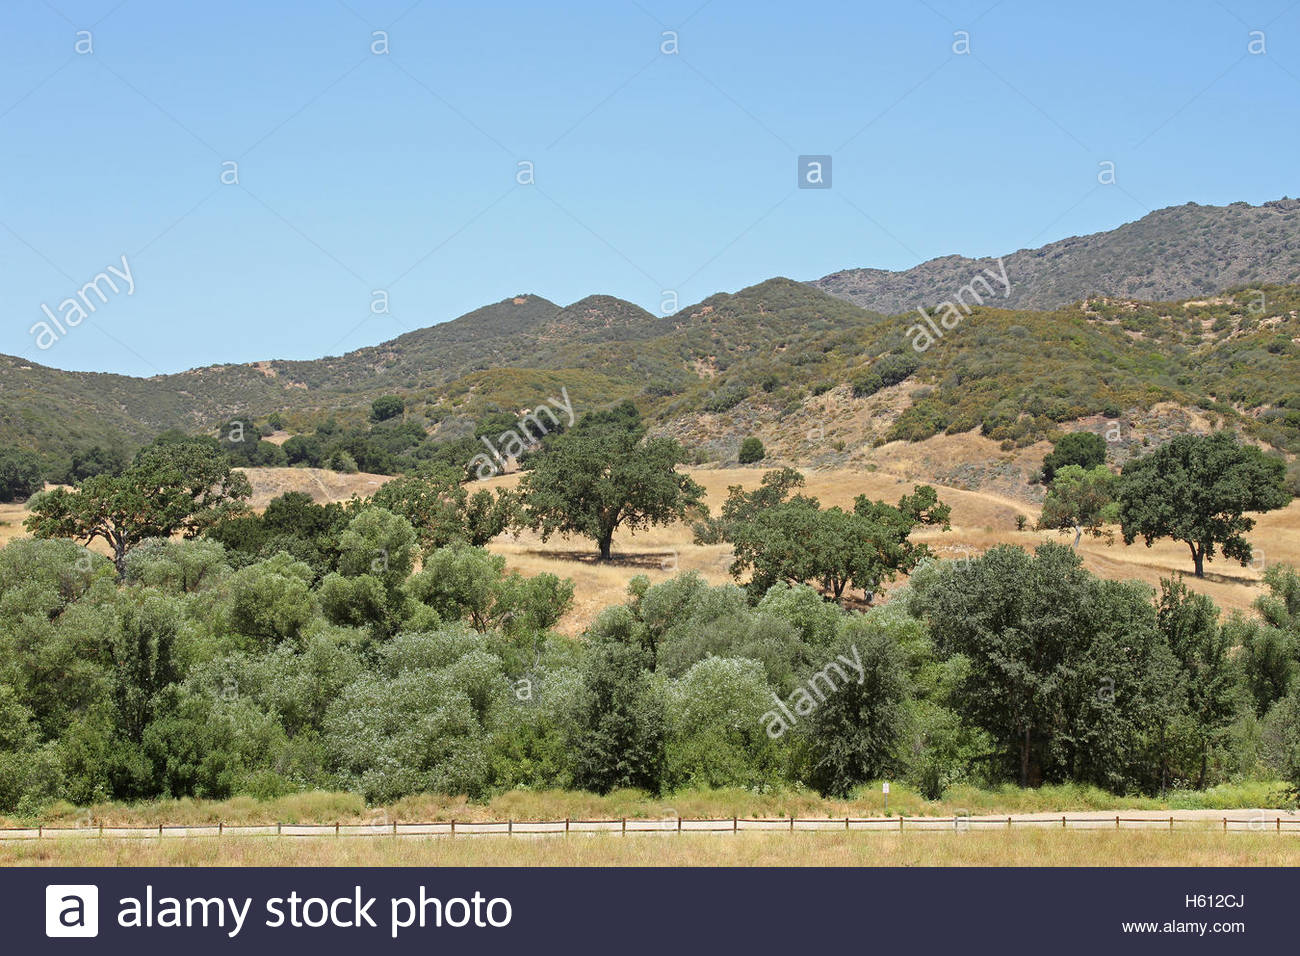 Paramount Ranch, Santa Monica Mountains National Recreation Area, Los Angeles, California, oak trees, suburban wilderness - Stock Image